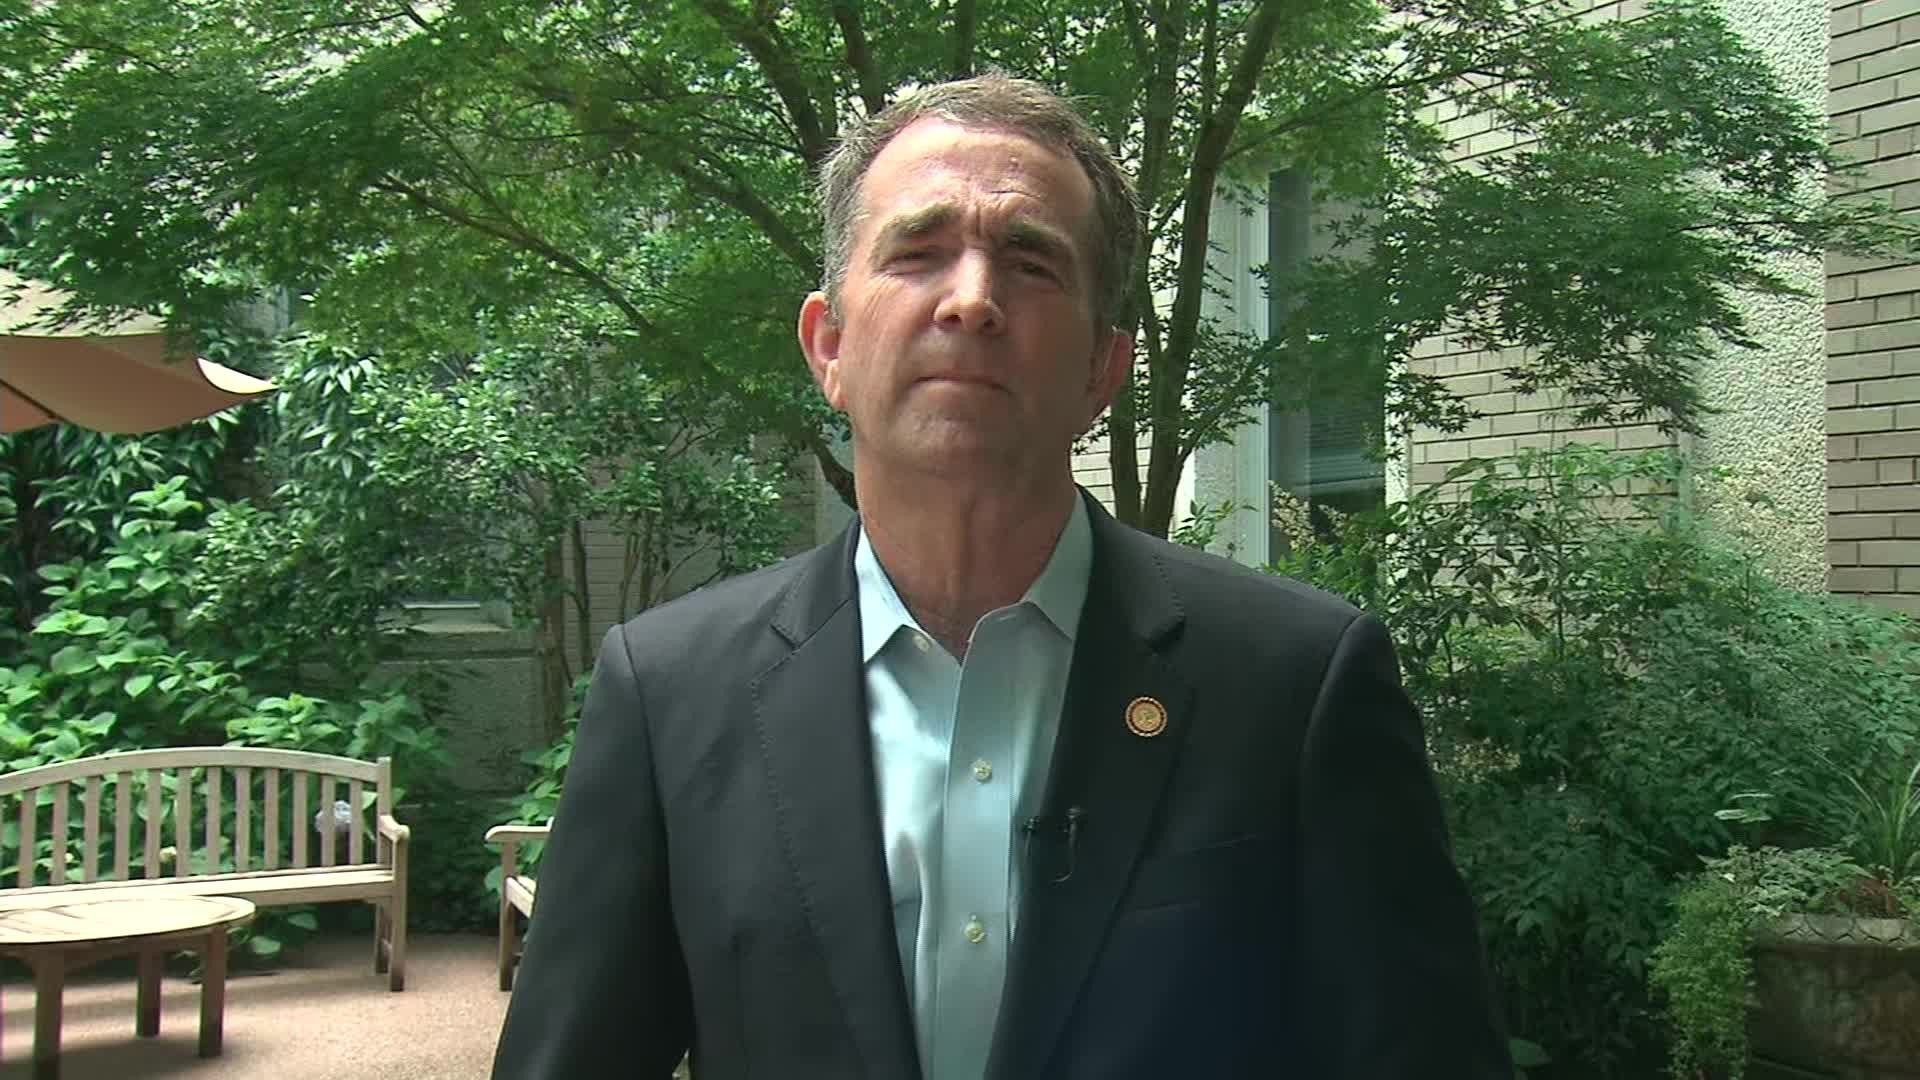 Virginia's Gov. Northam reels from mass shooting after falling short on gun reforms